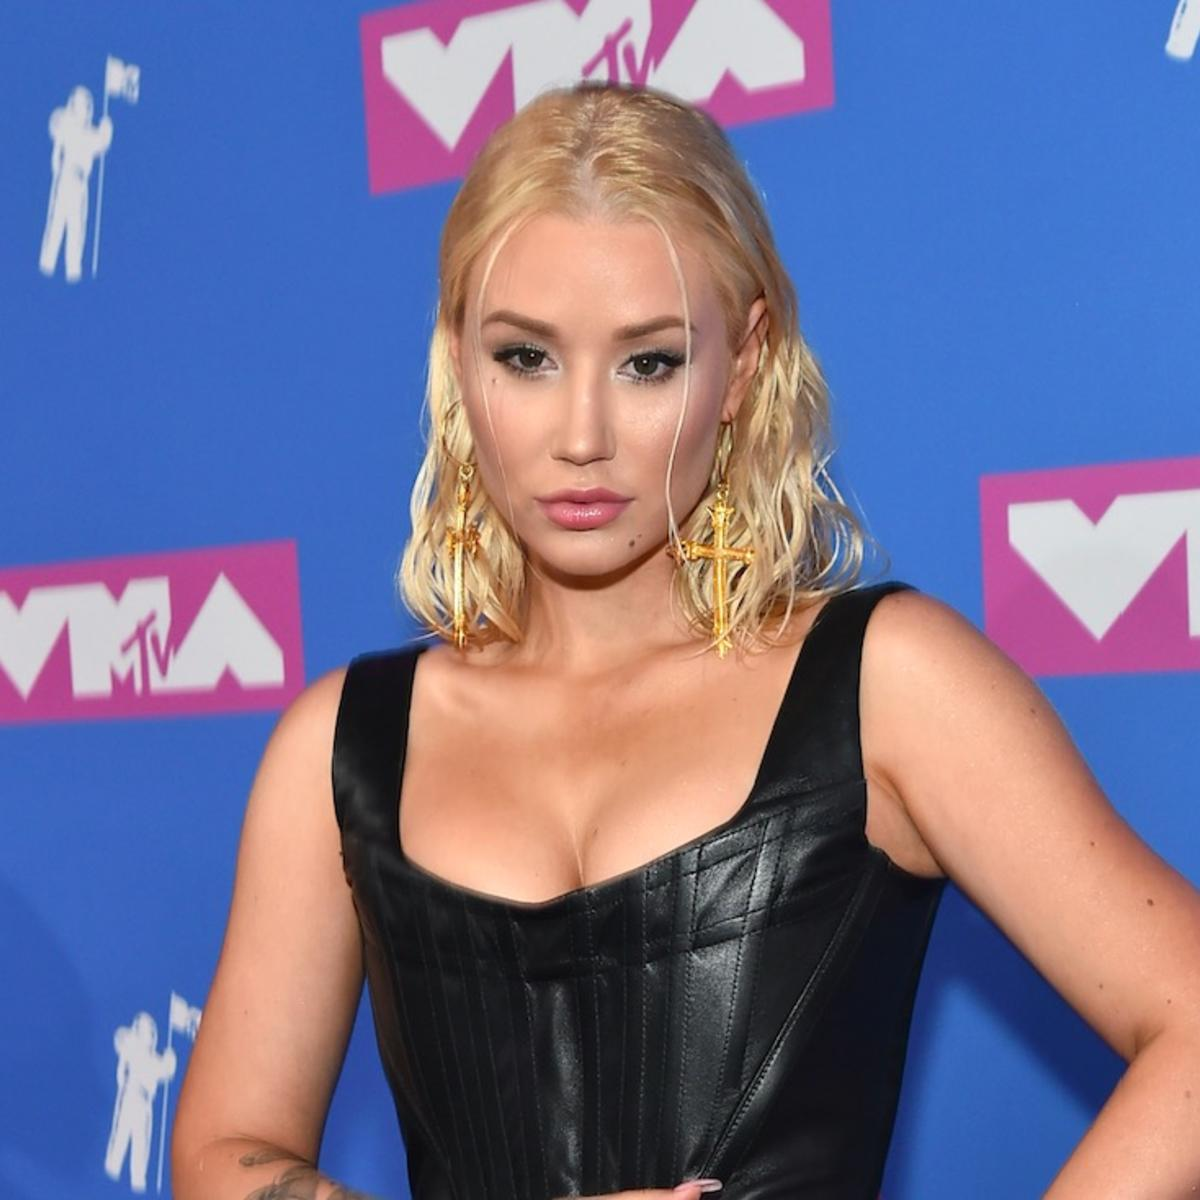 Mike Coppola/Getty Images for MTV